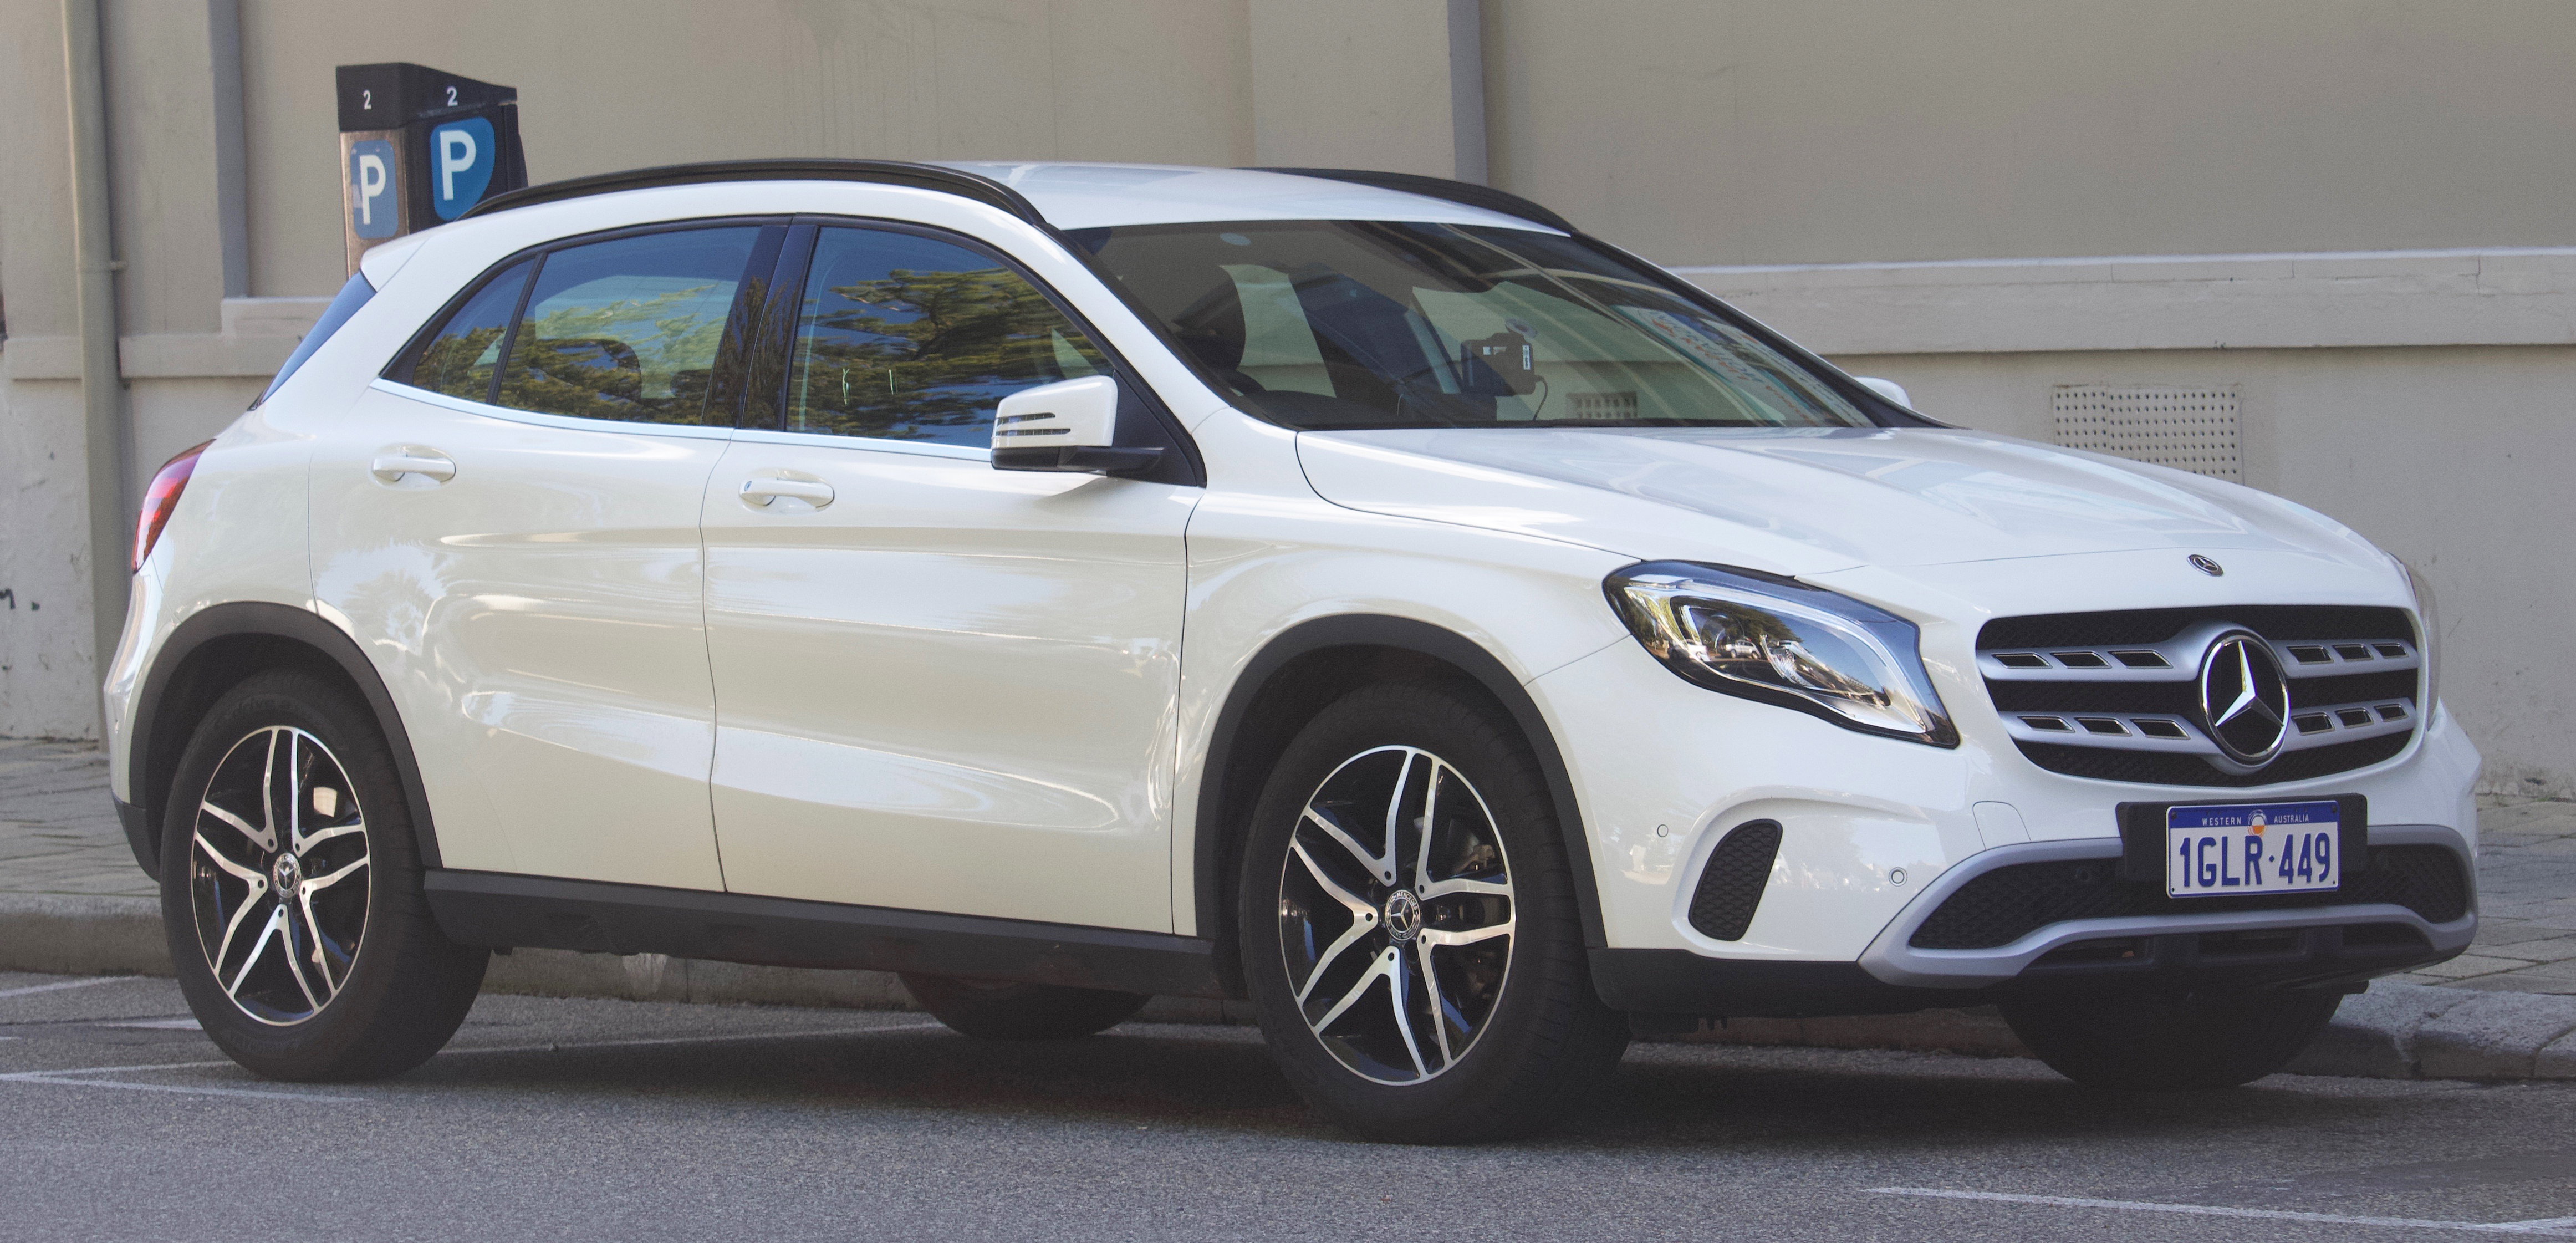 Mercedes GLA-Class (H247) accessories specifications